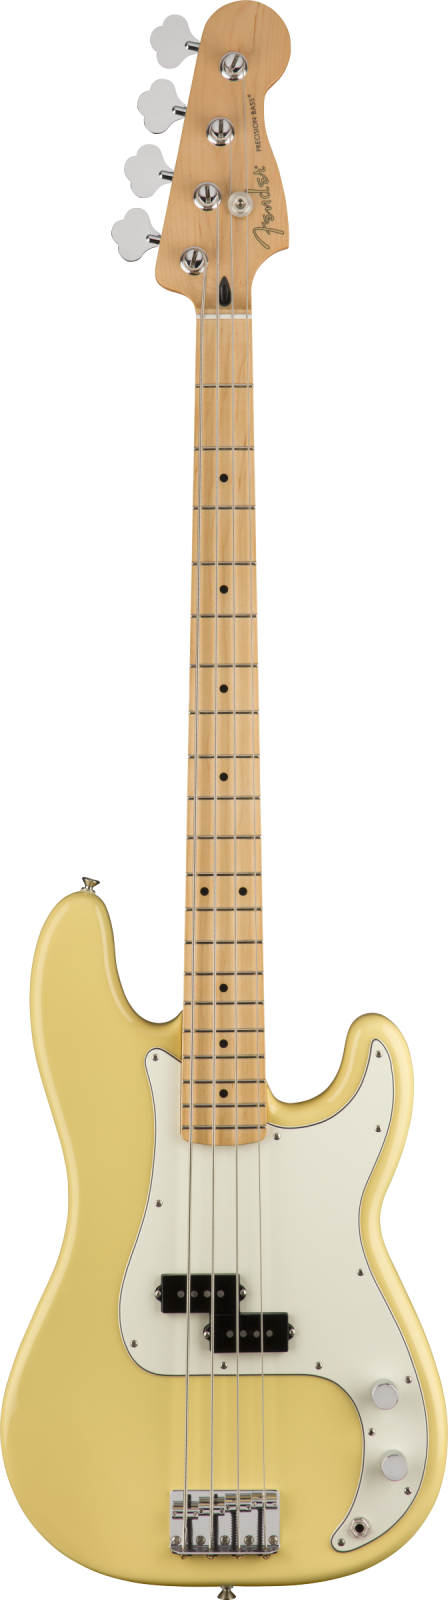 Fender Player P Bass Buttercream MN